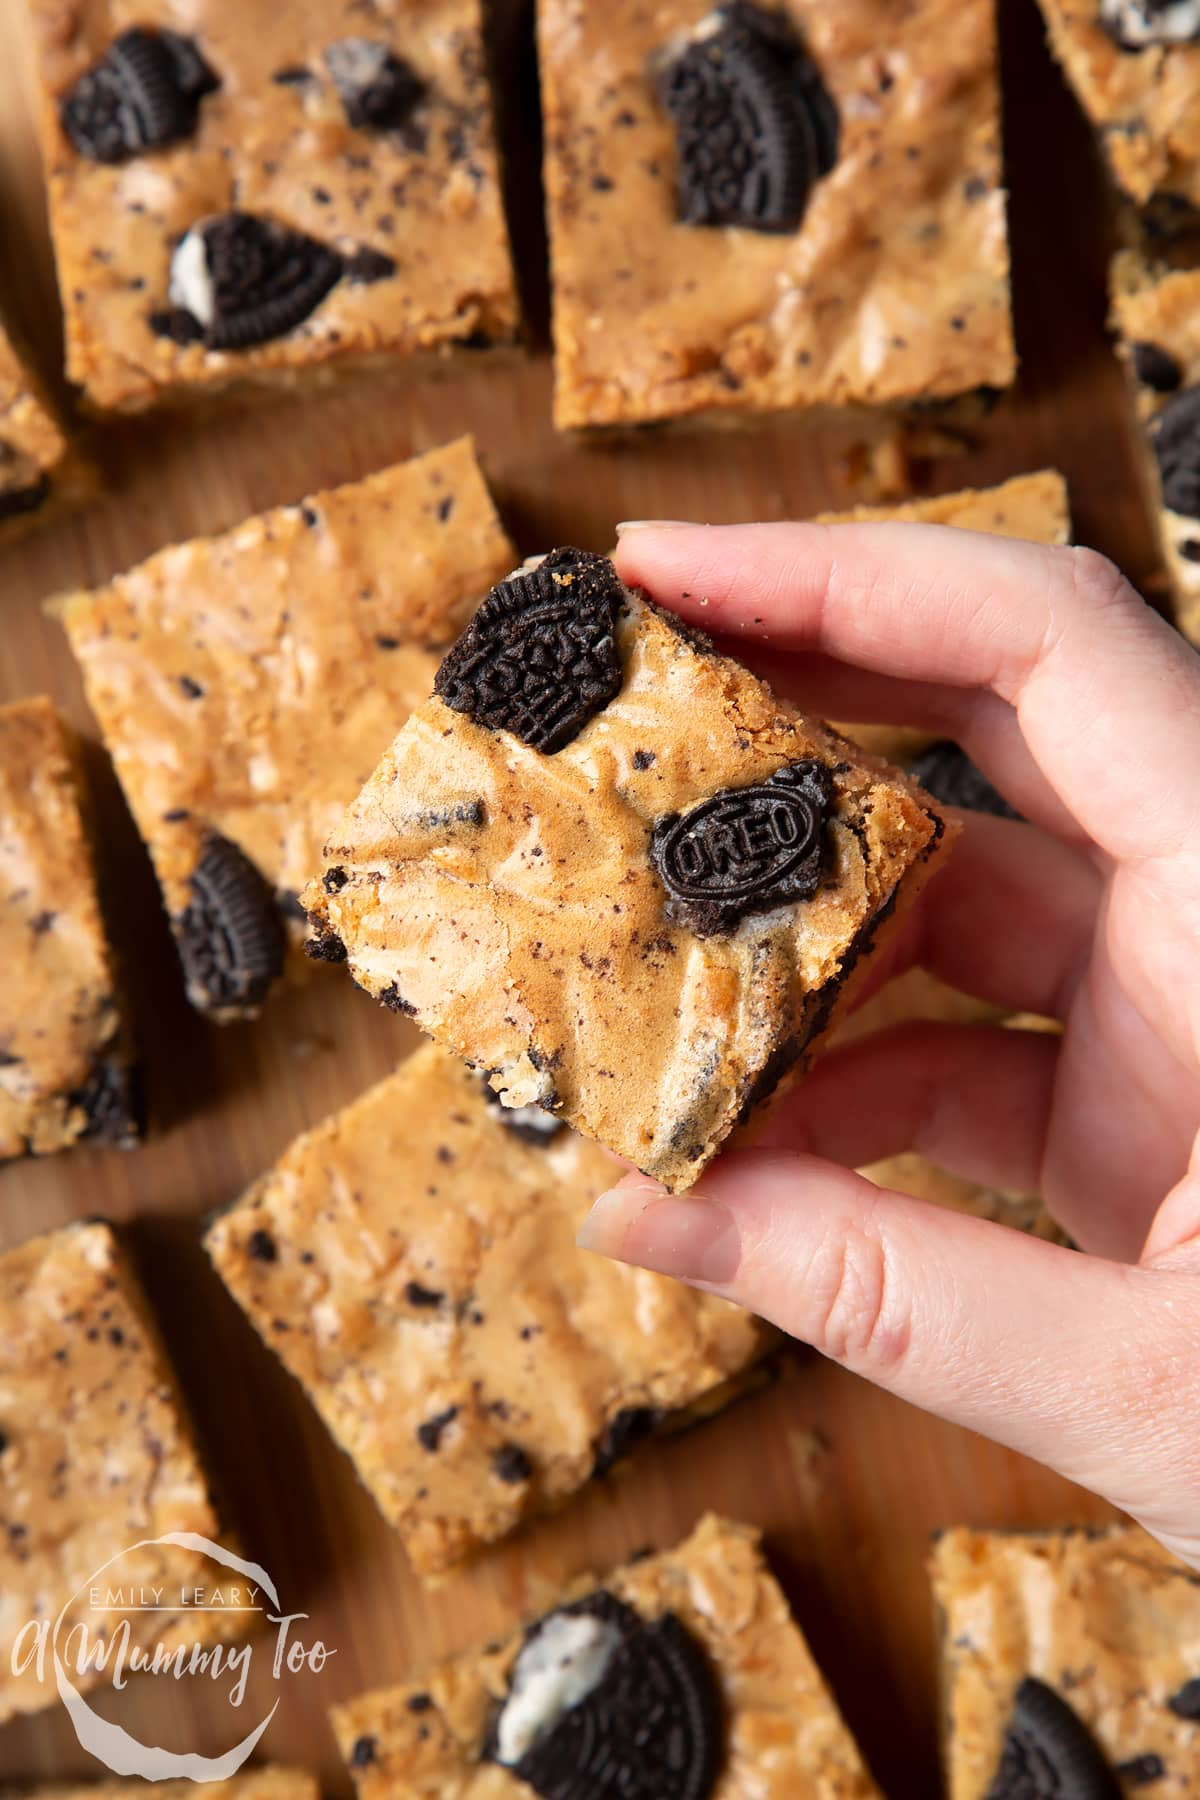 Overhead shot of a hand holding a square Oreo Blondie over a wooden board